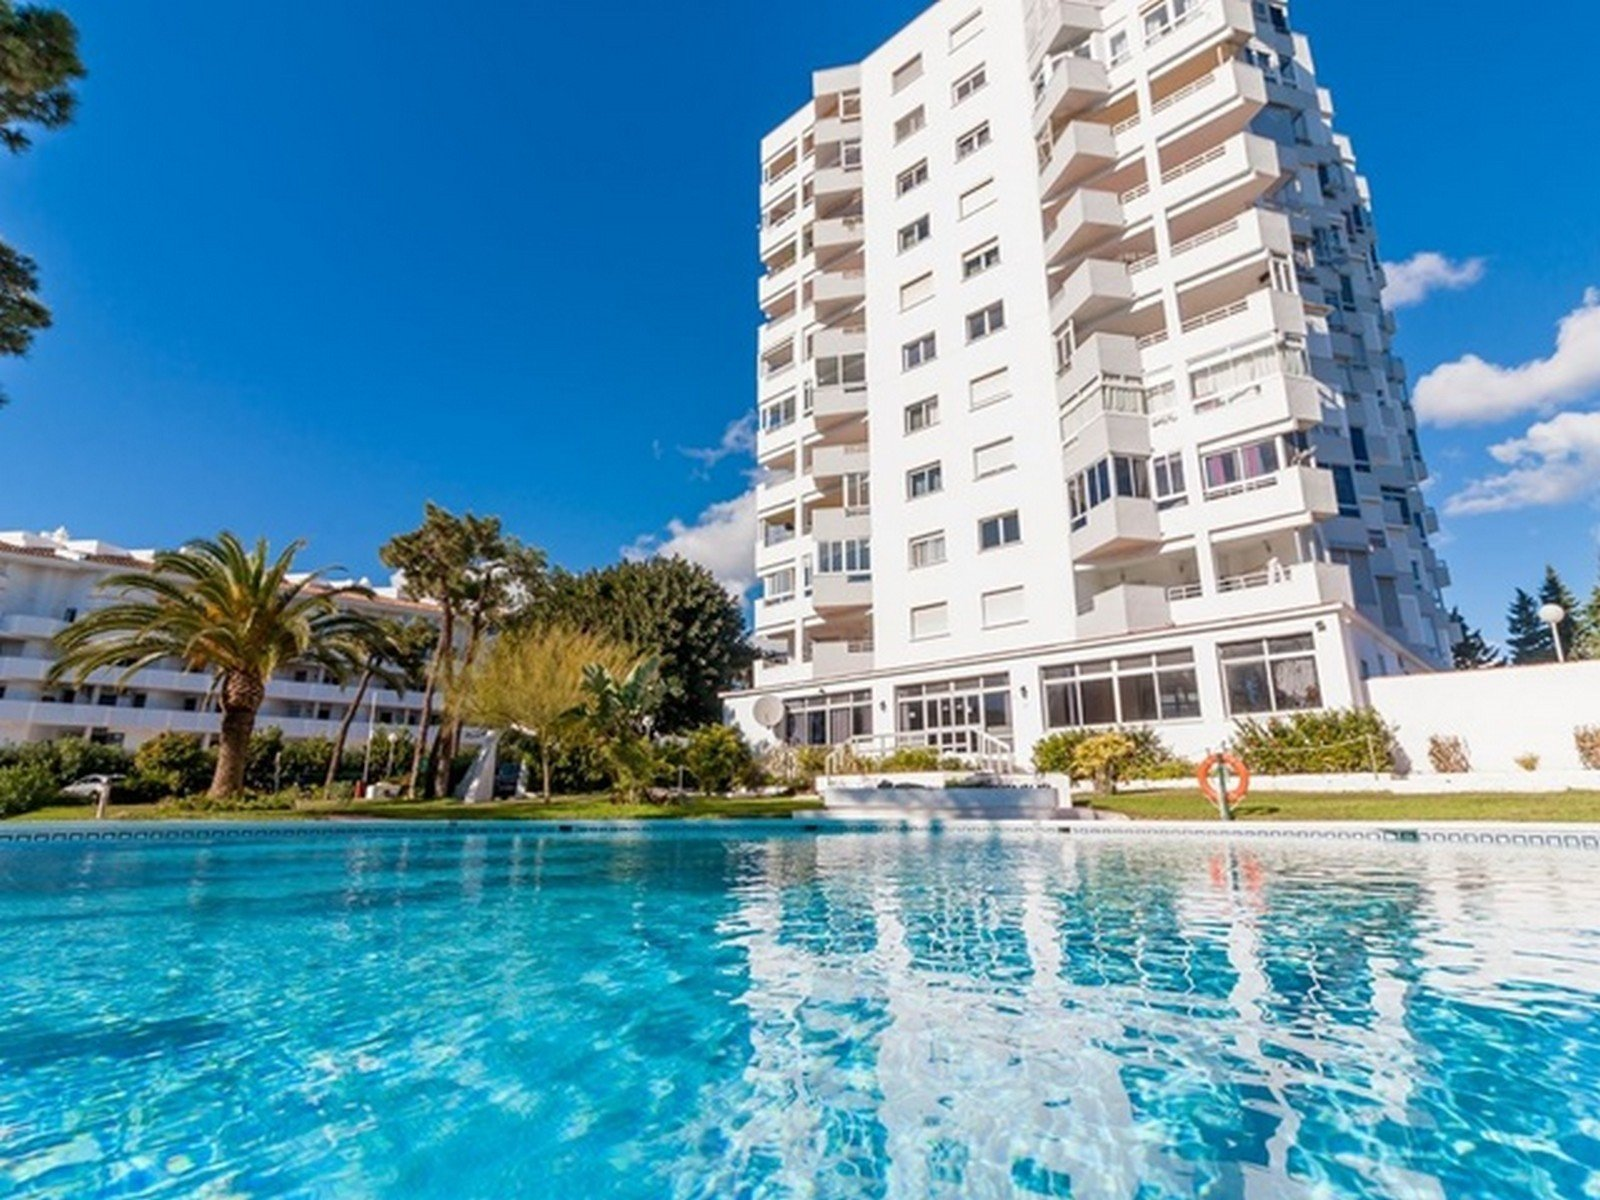 Apartment te koop in Calahonda